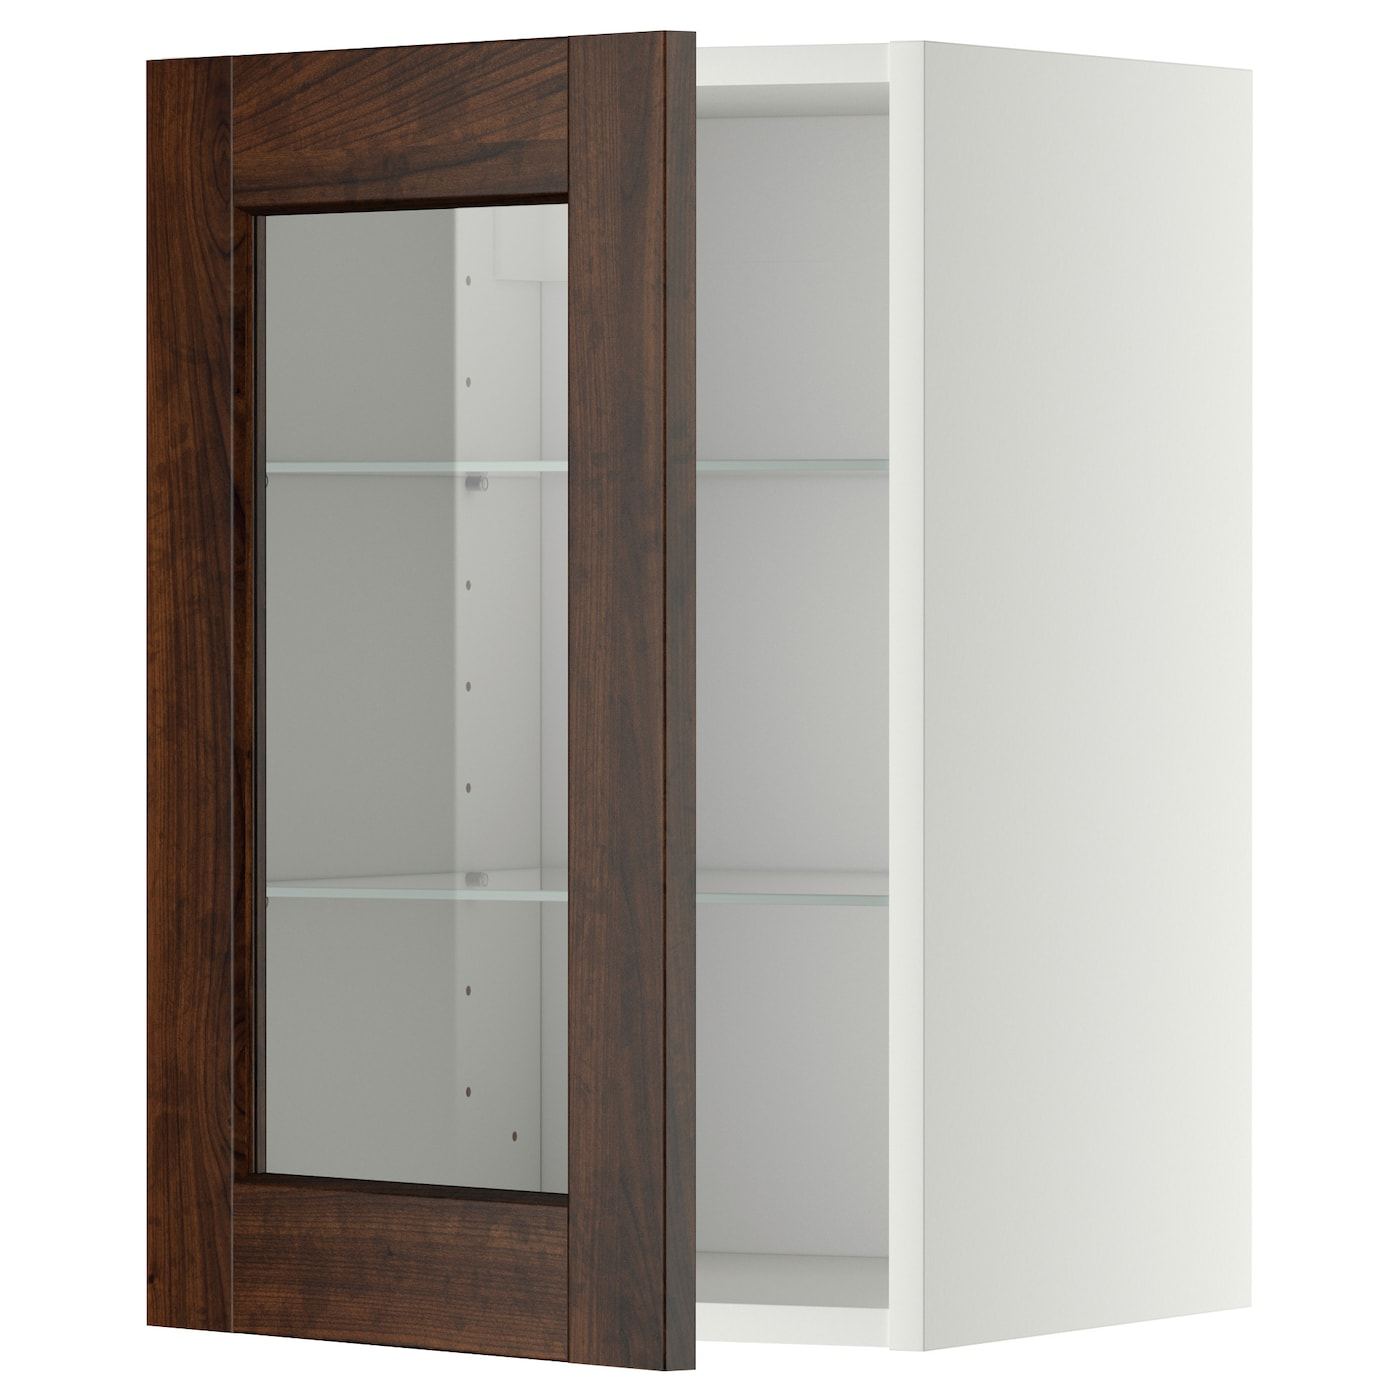 Metod wall cabinet w shelves glass door white edserum for Glass kitchen wall units